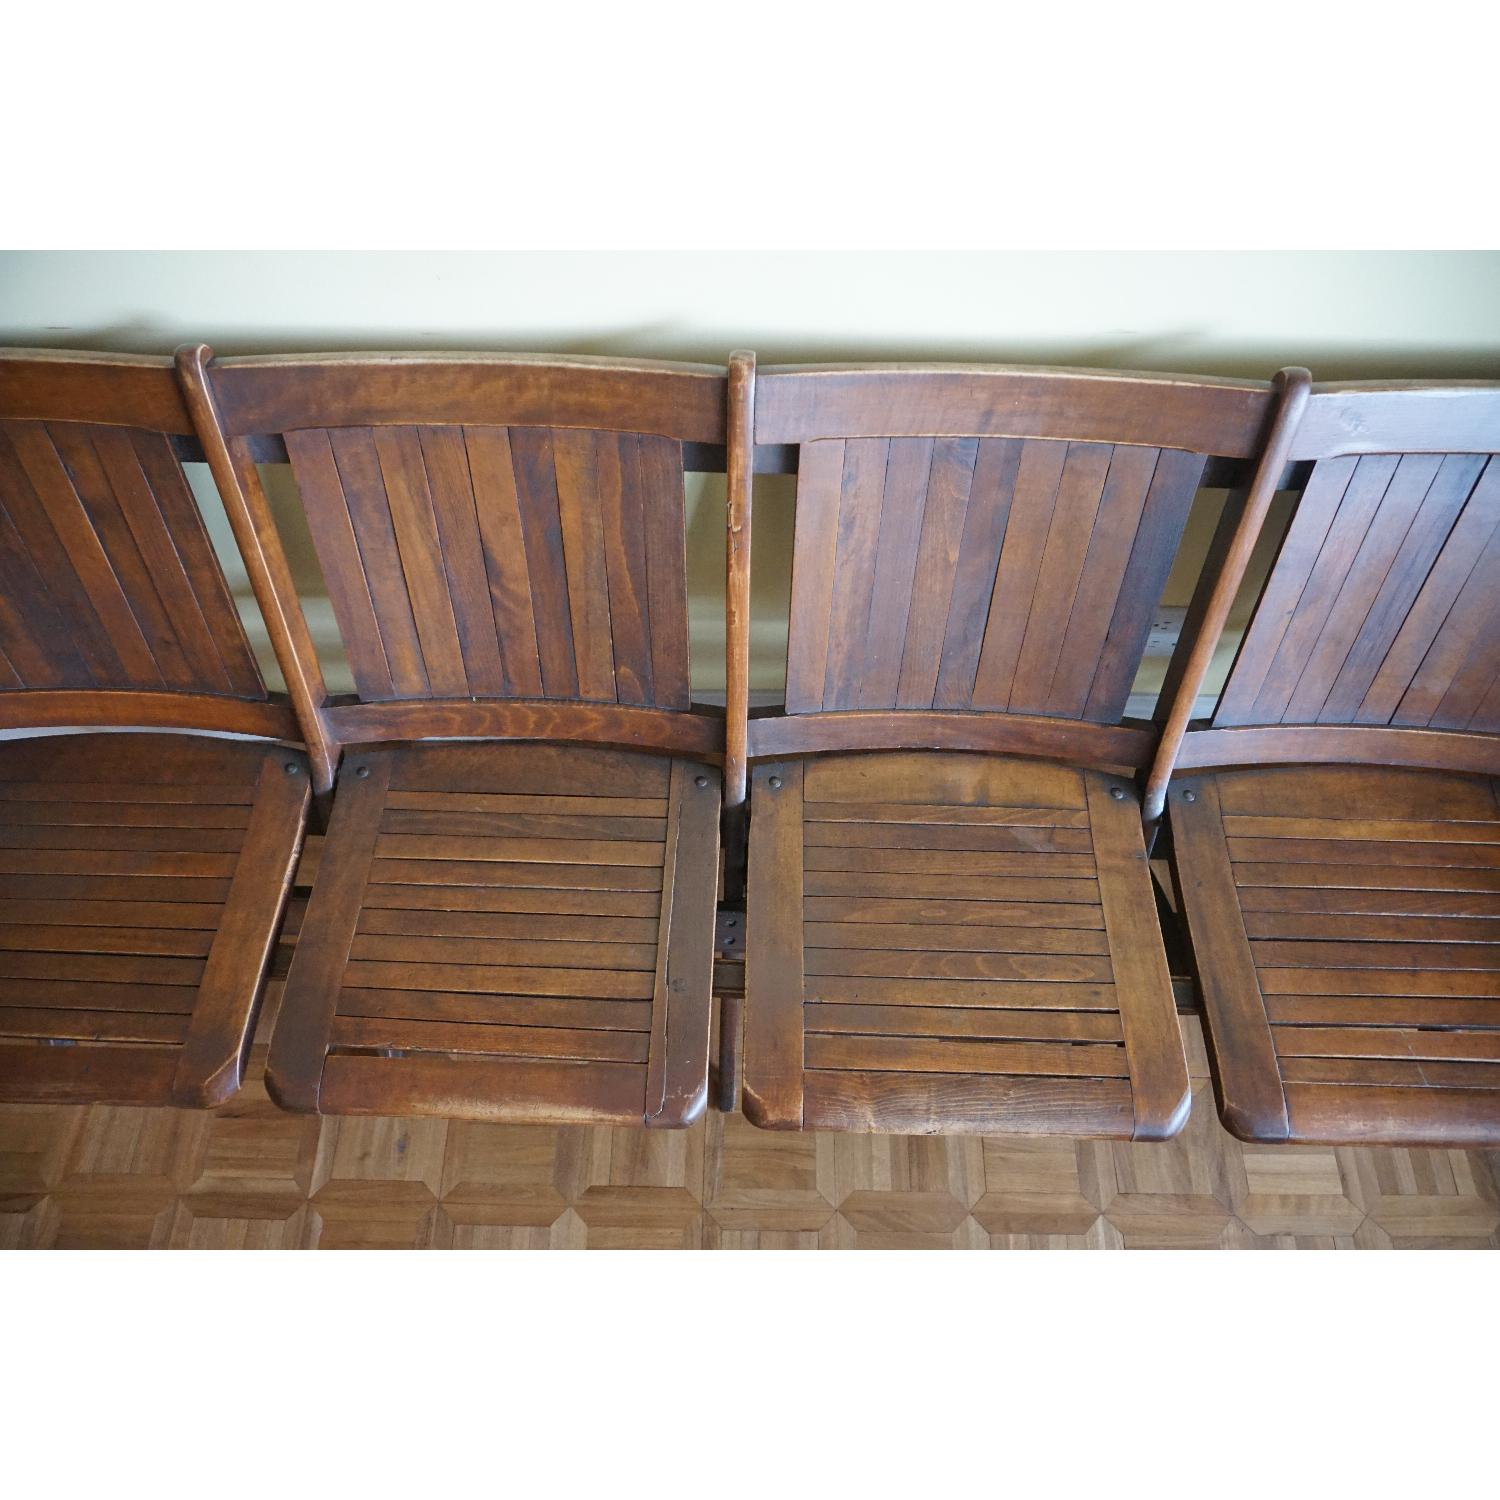 Vintage Harlem Movie Theater Wooden Bench Seats - image-3